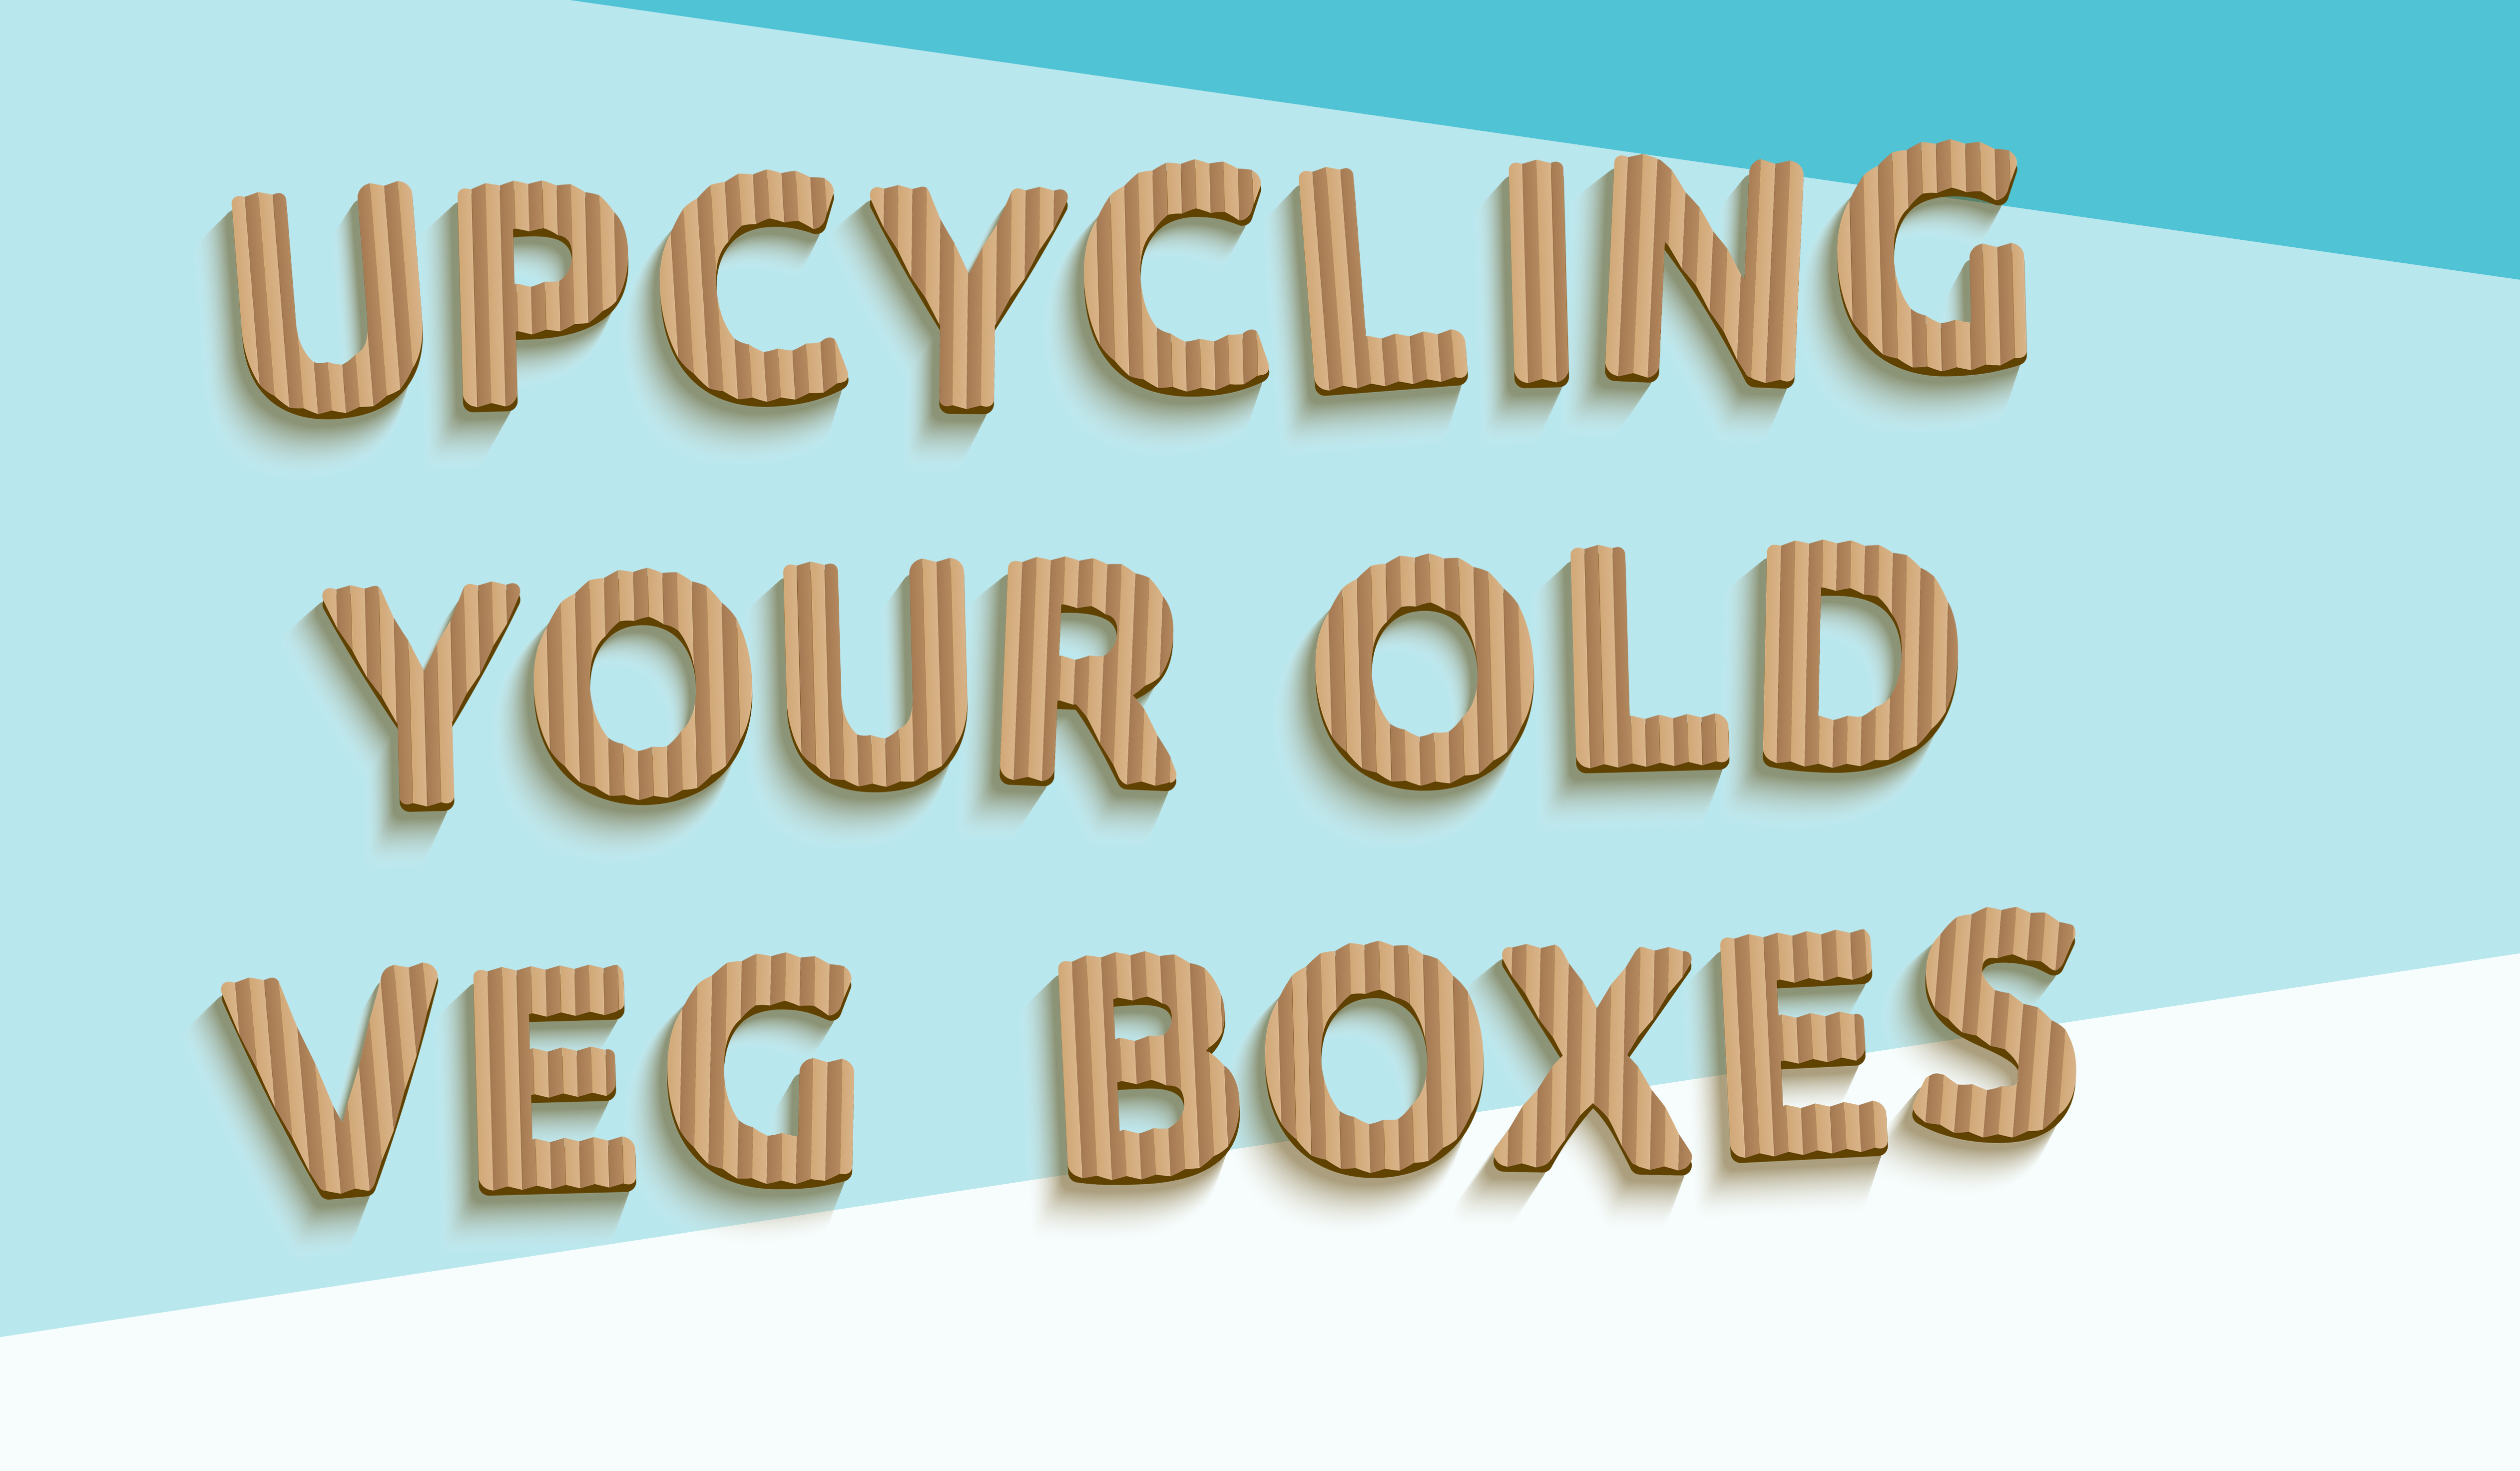 Upcycling your old veg boxes